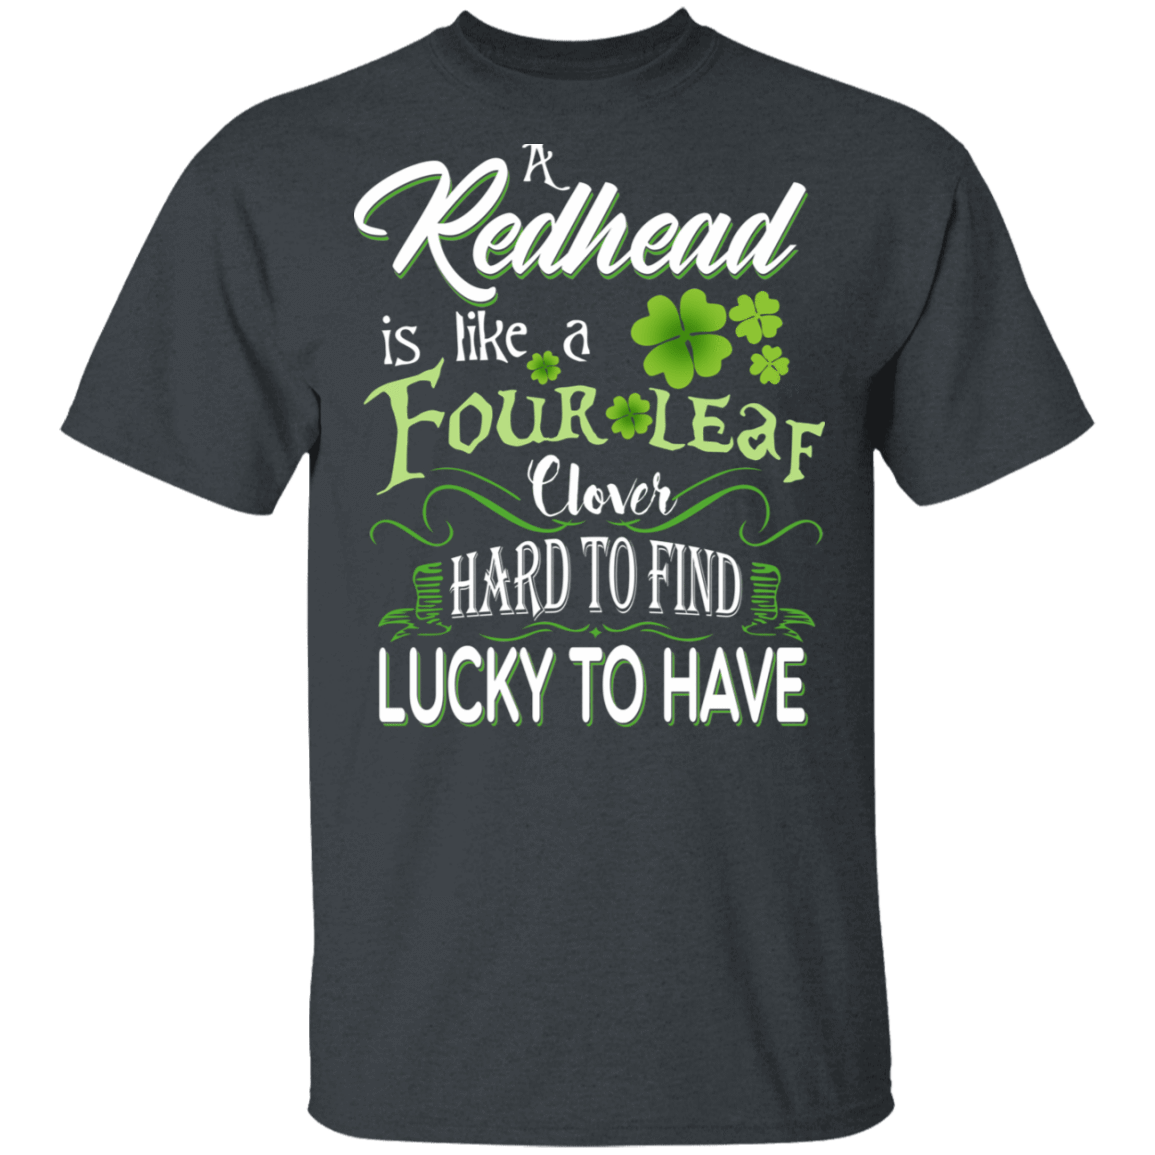 A Redhead Is Like A Four Leaf Clover Hard To Find Lucky To Have T-Shirts, Hoodies 1049-9957-83108879-48192 - Tee Ript